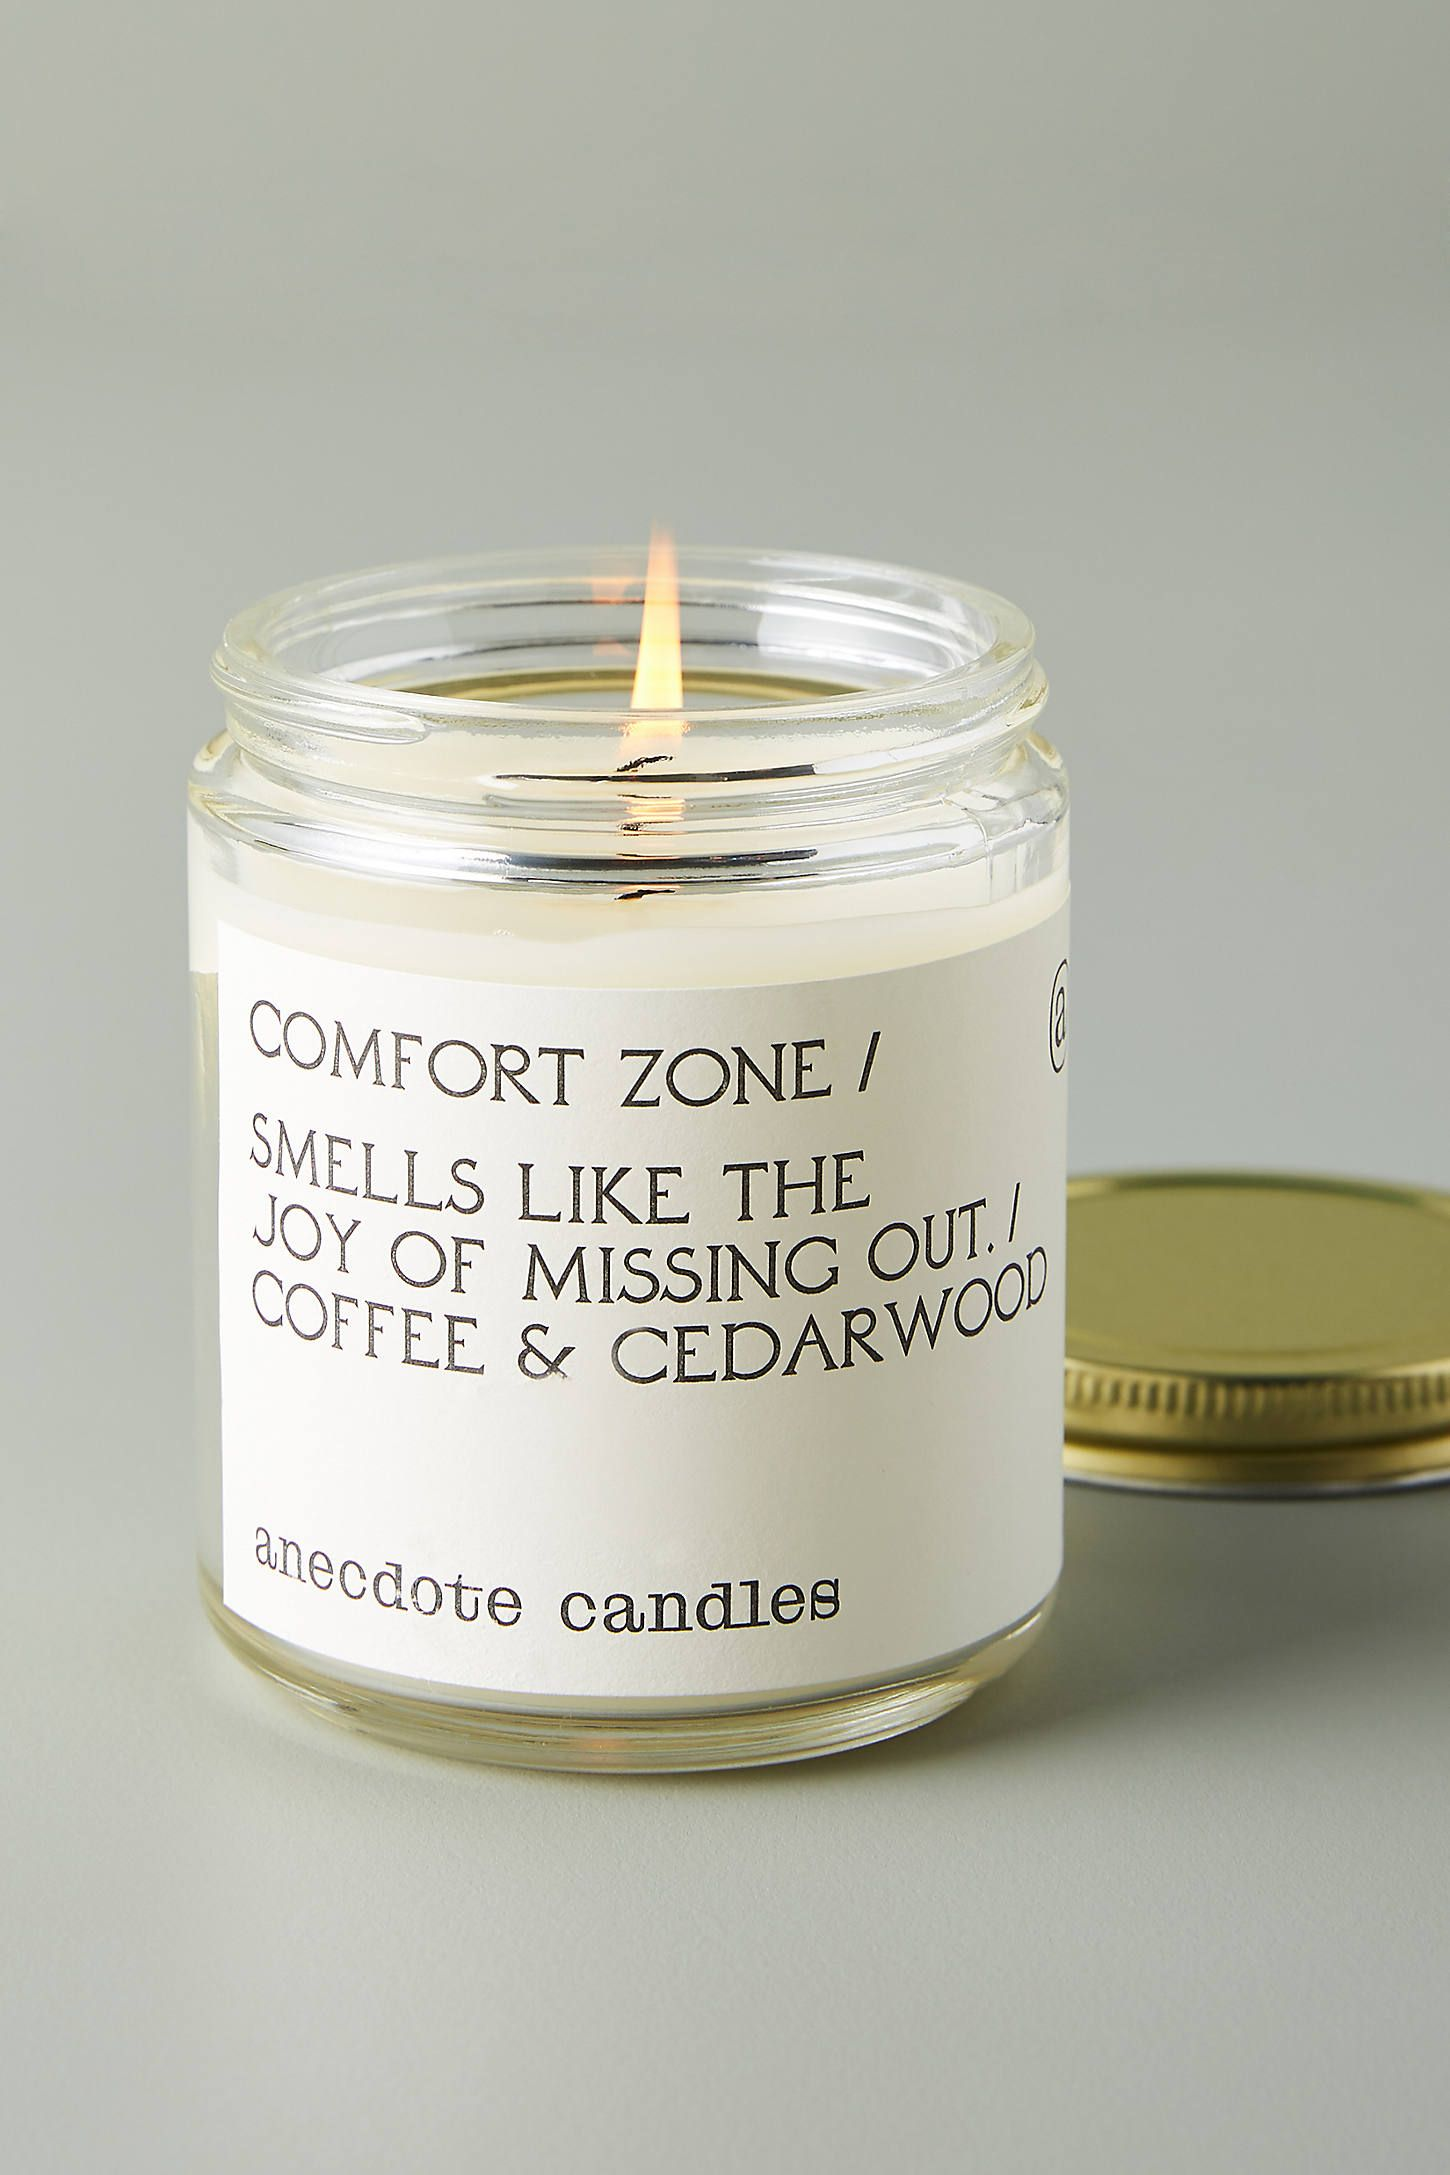 Anecdote Winter Comfort Glass Candle By Anthropologie In Beige Candles In 2020 Candles Glass Candle Apothecary Decor